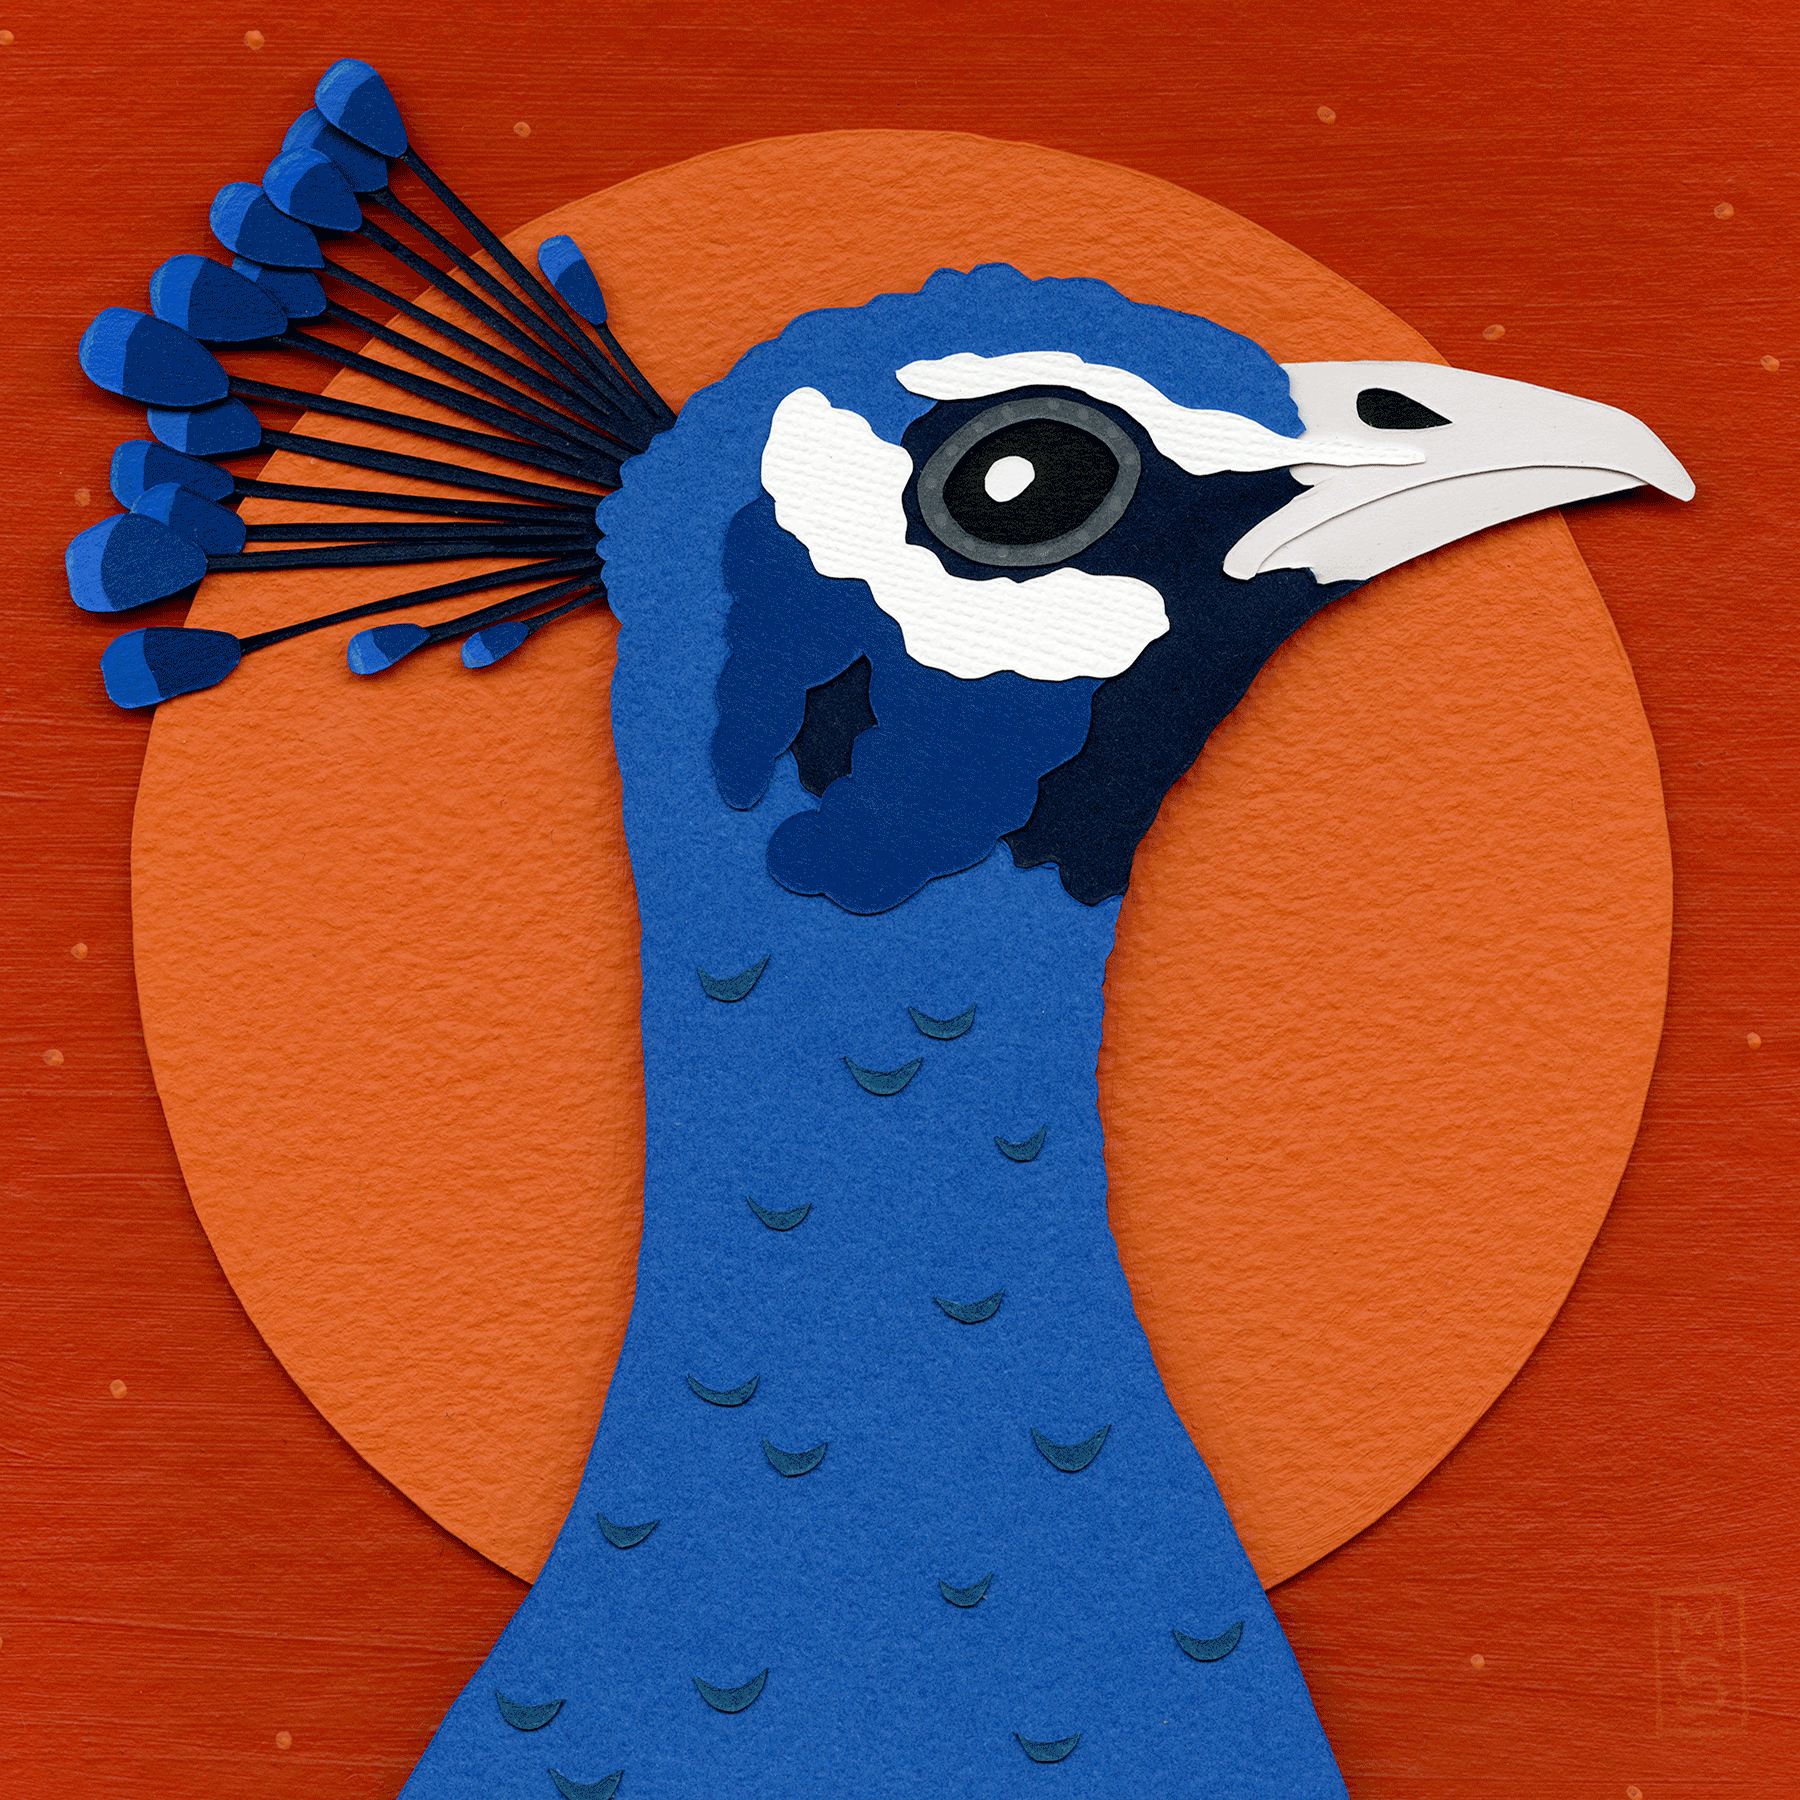 Peacock_sRGB.png